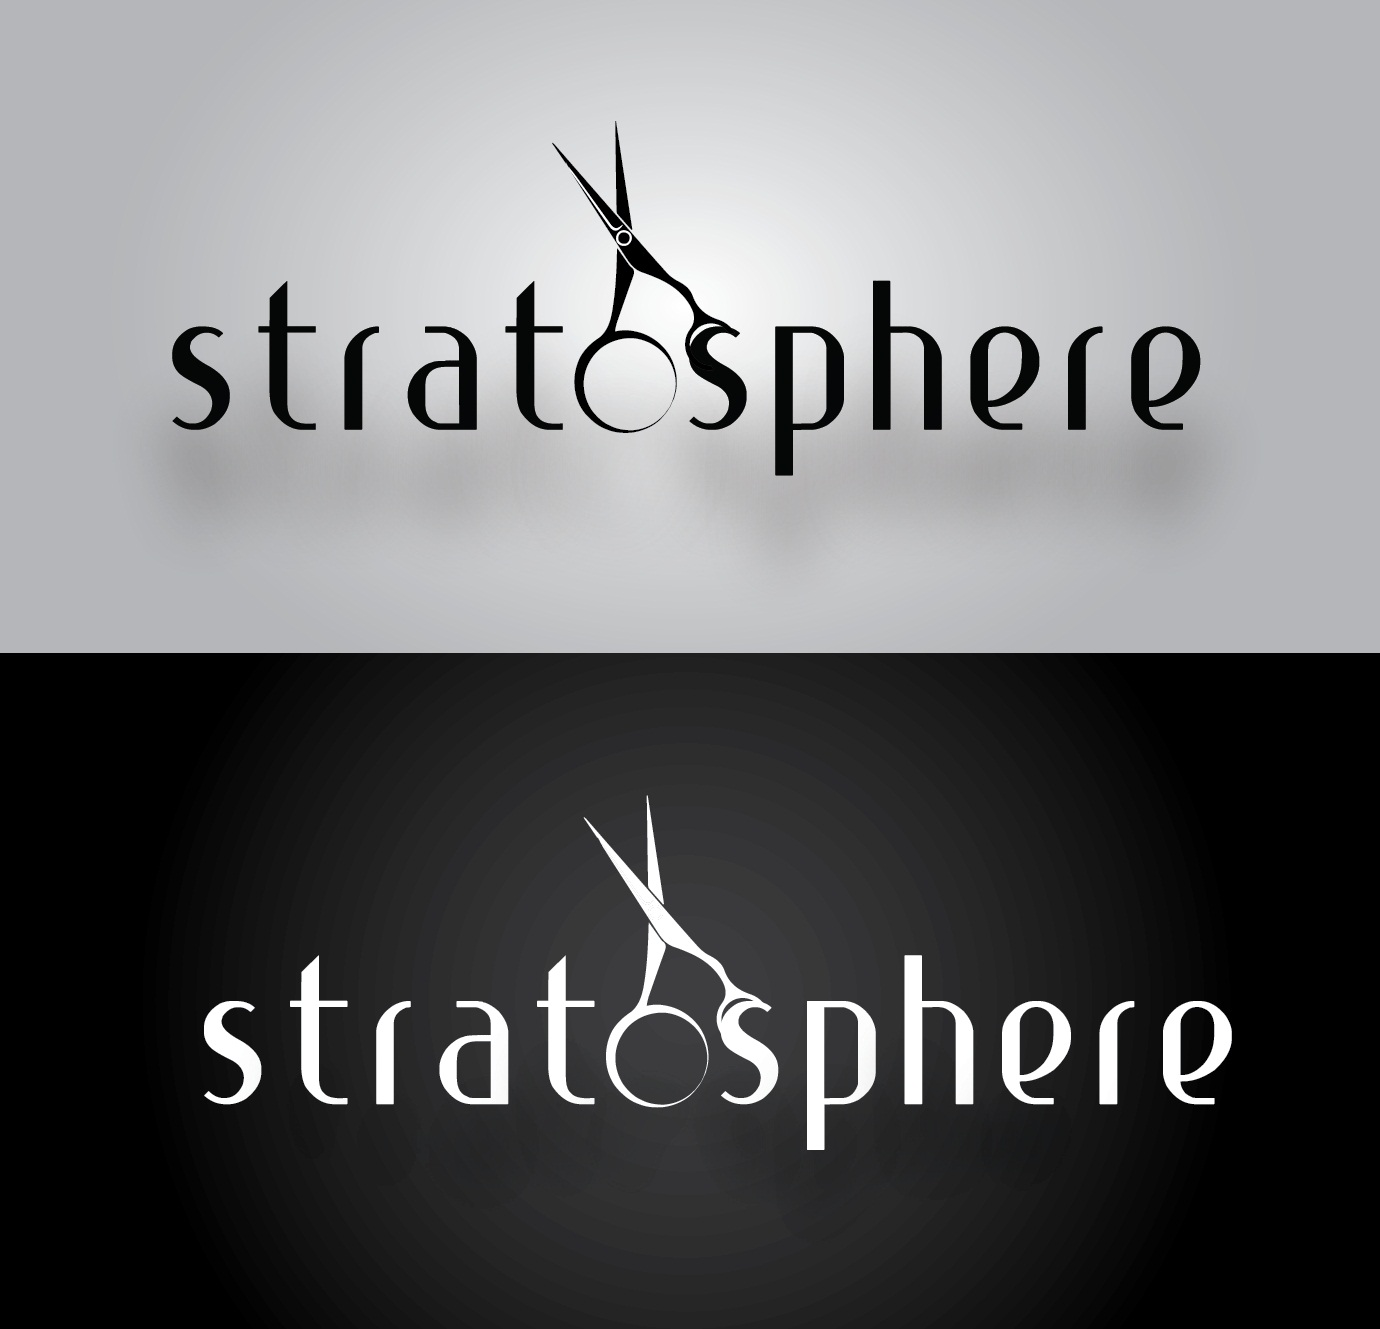 Logo Design by mediaproductionart - Entry No. 20 in the Logo Design Contest Captivating Logo Design for Stratosphere.